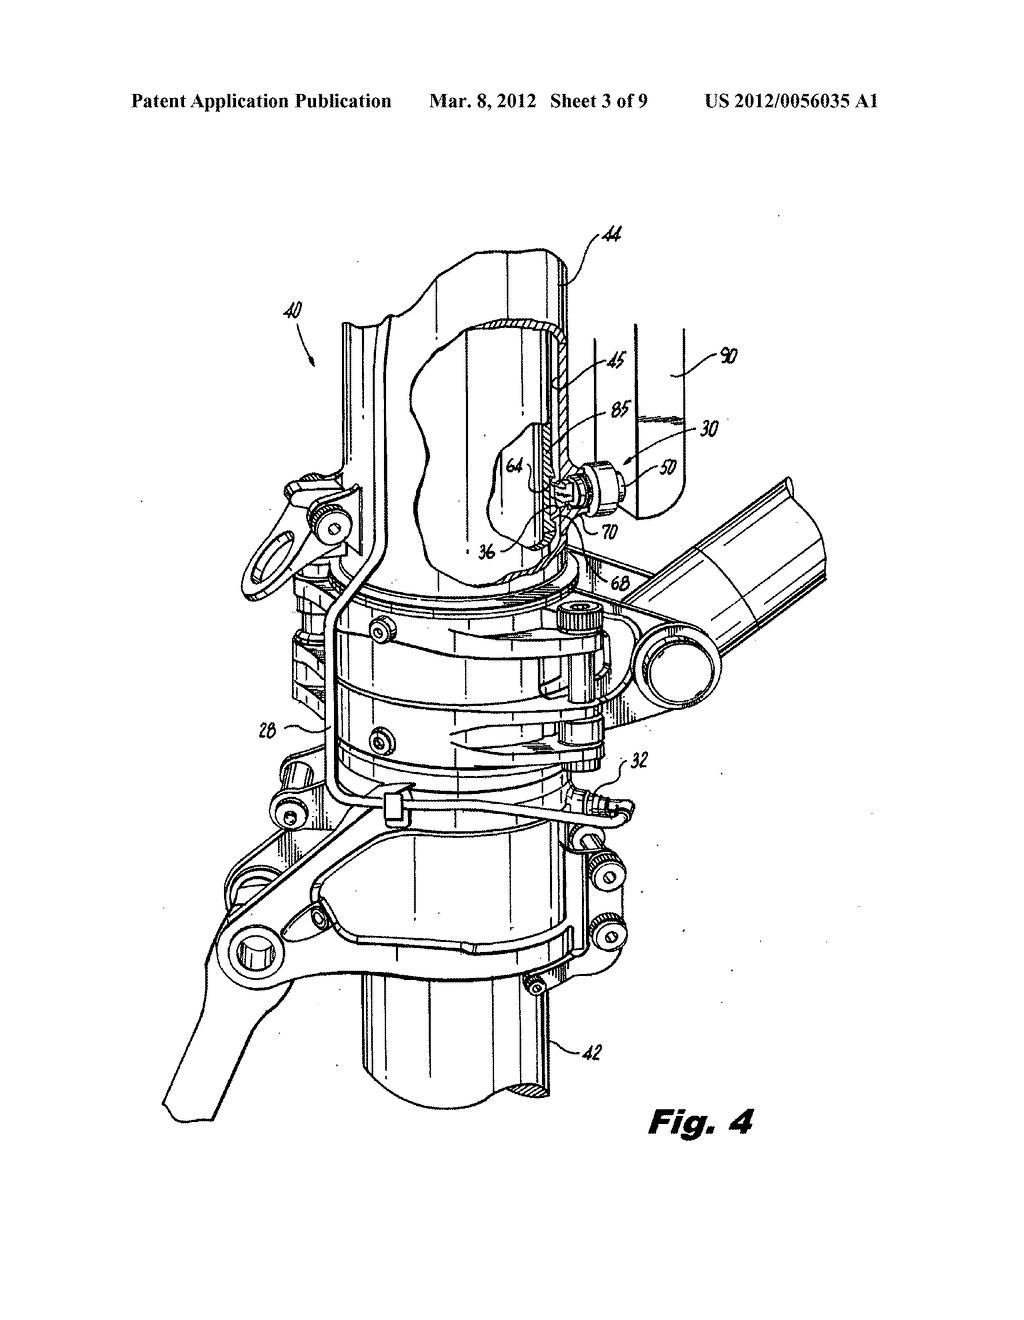 hight resolution of shrink shock strut locking mechanism for retractable aircraft landing gear diagram schematic and image 04